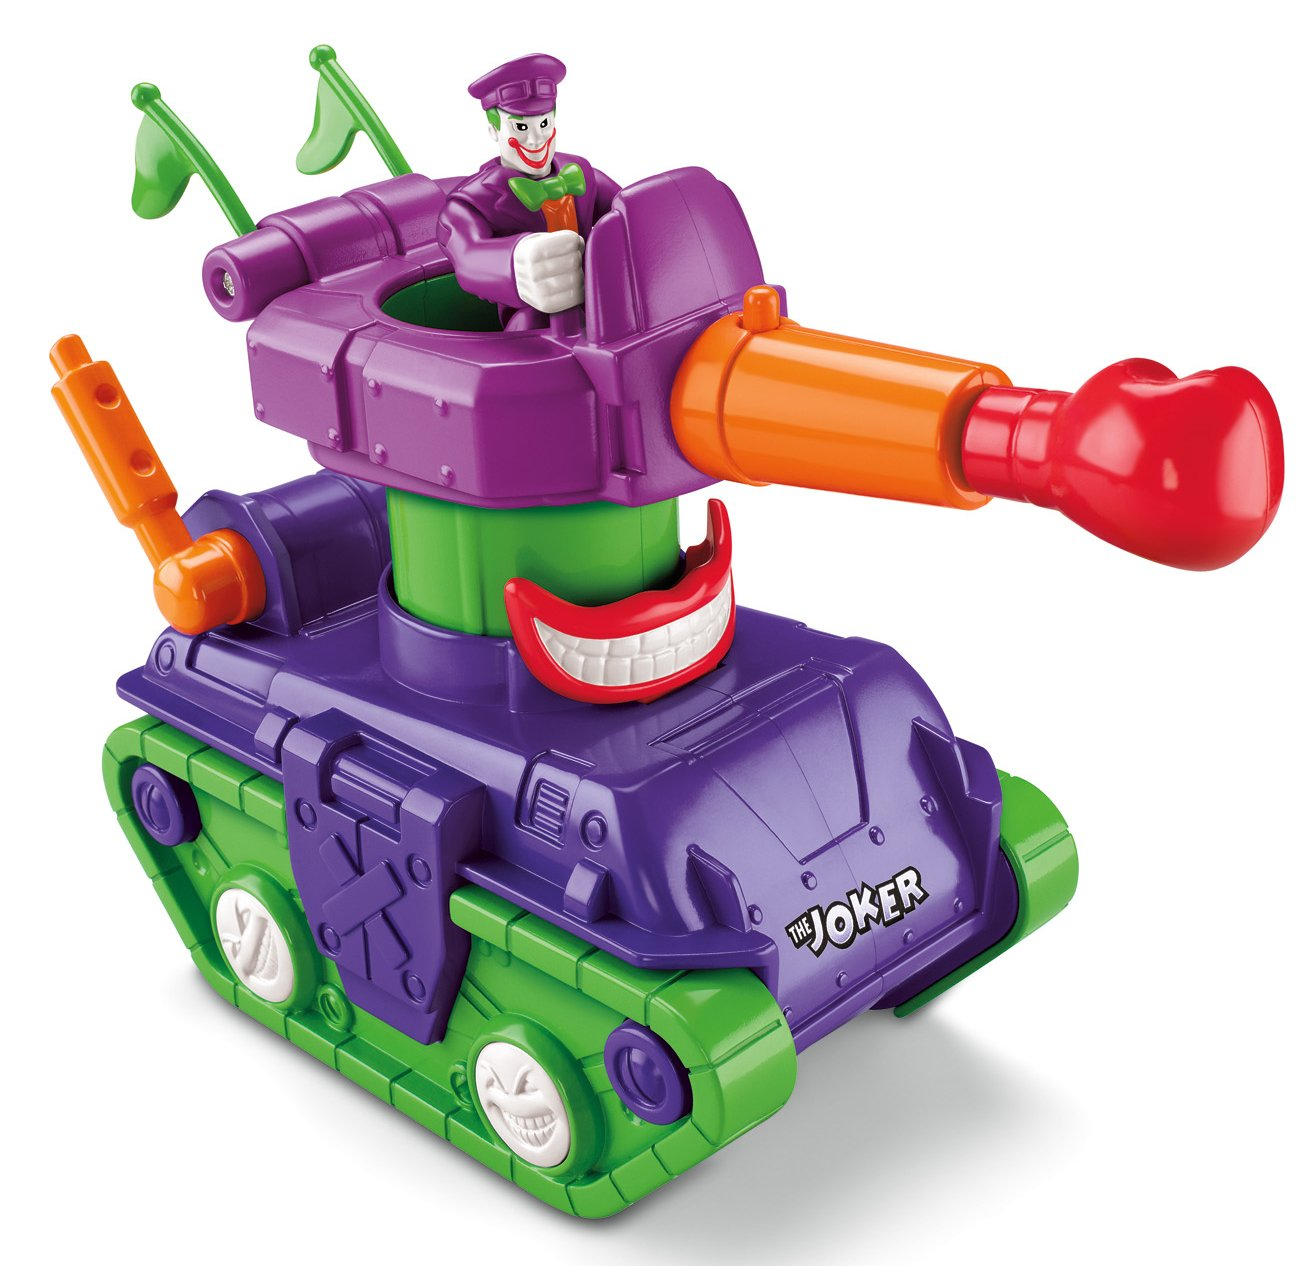 Fisher-Price Imaginext DC Super Friends, Joker Tank by Fisher-Price (Image #6)